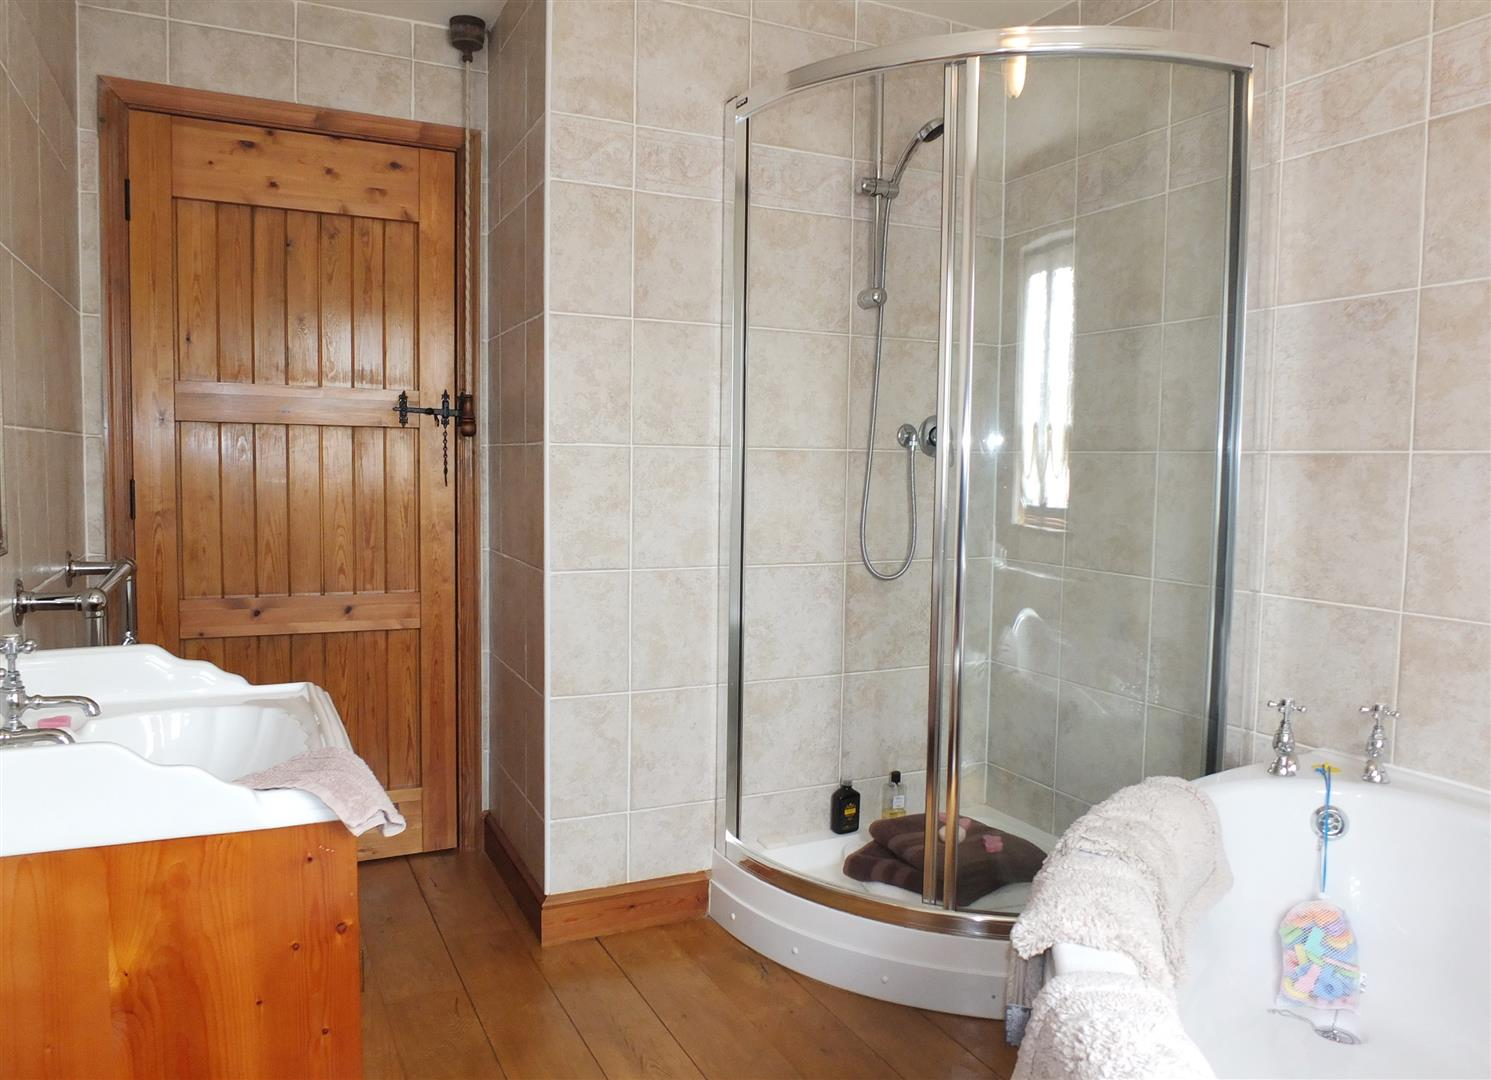 5 bed detached house for sale in Boston, PE20 2DB  - Property Image 24